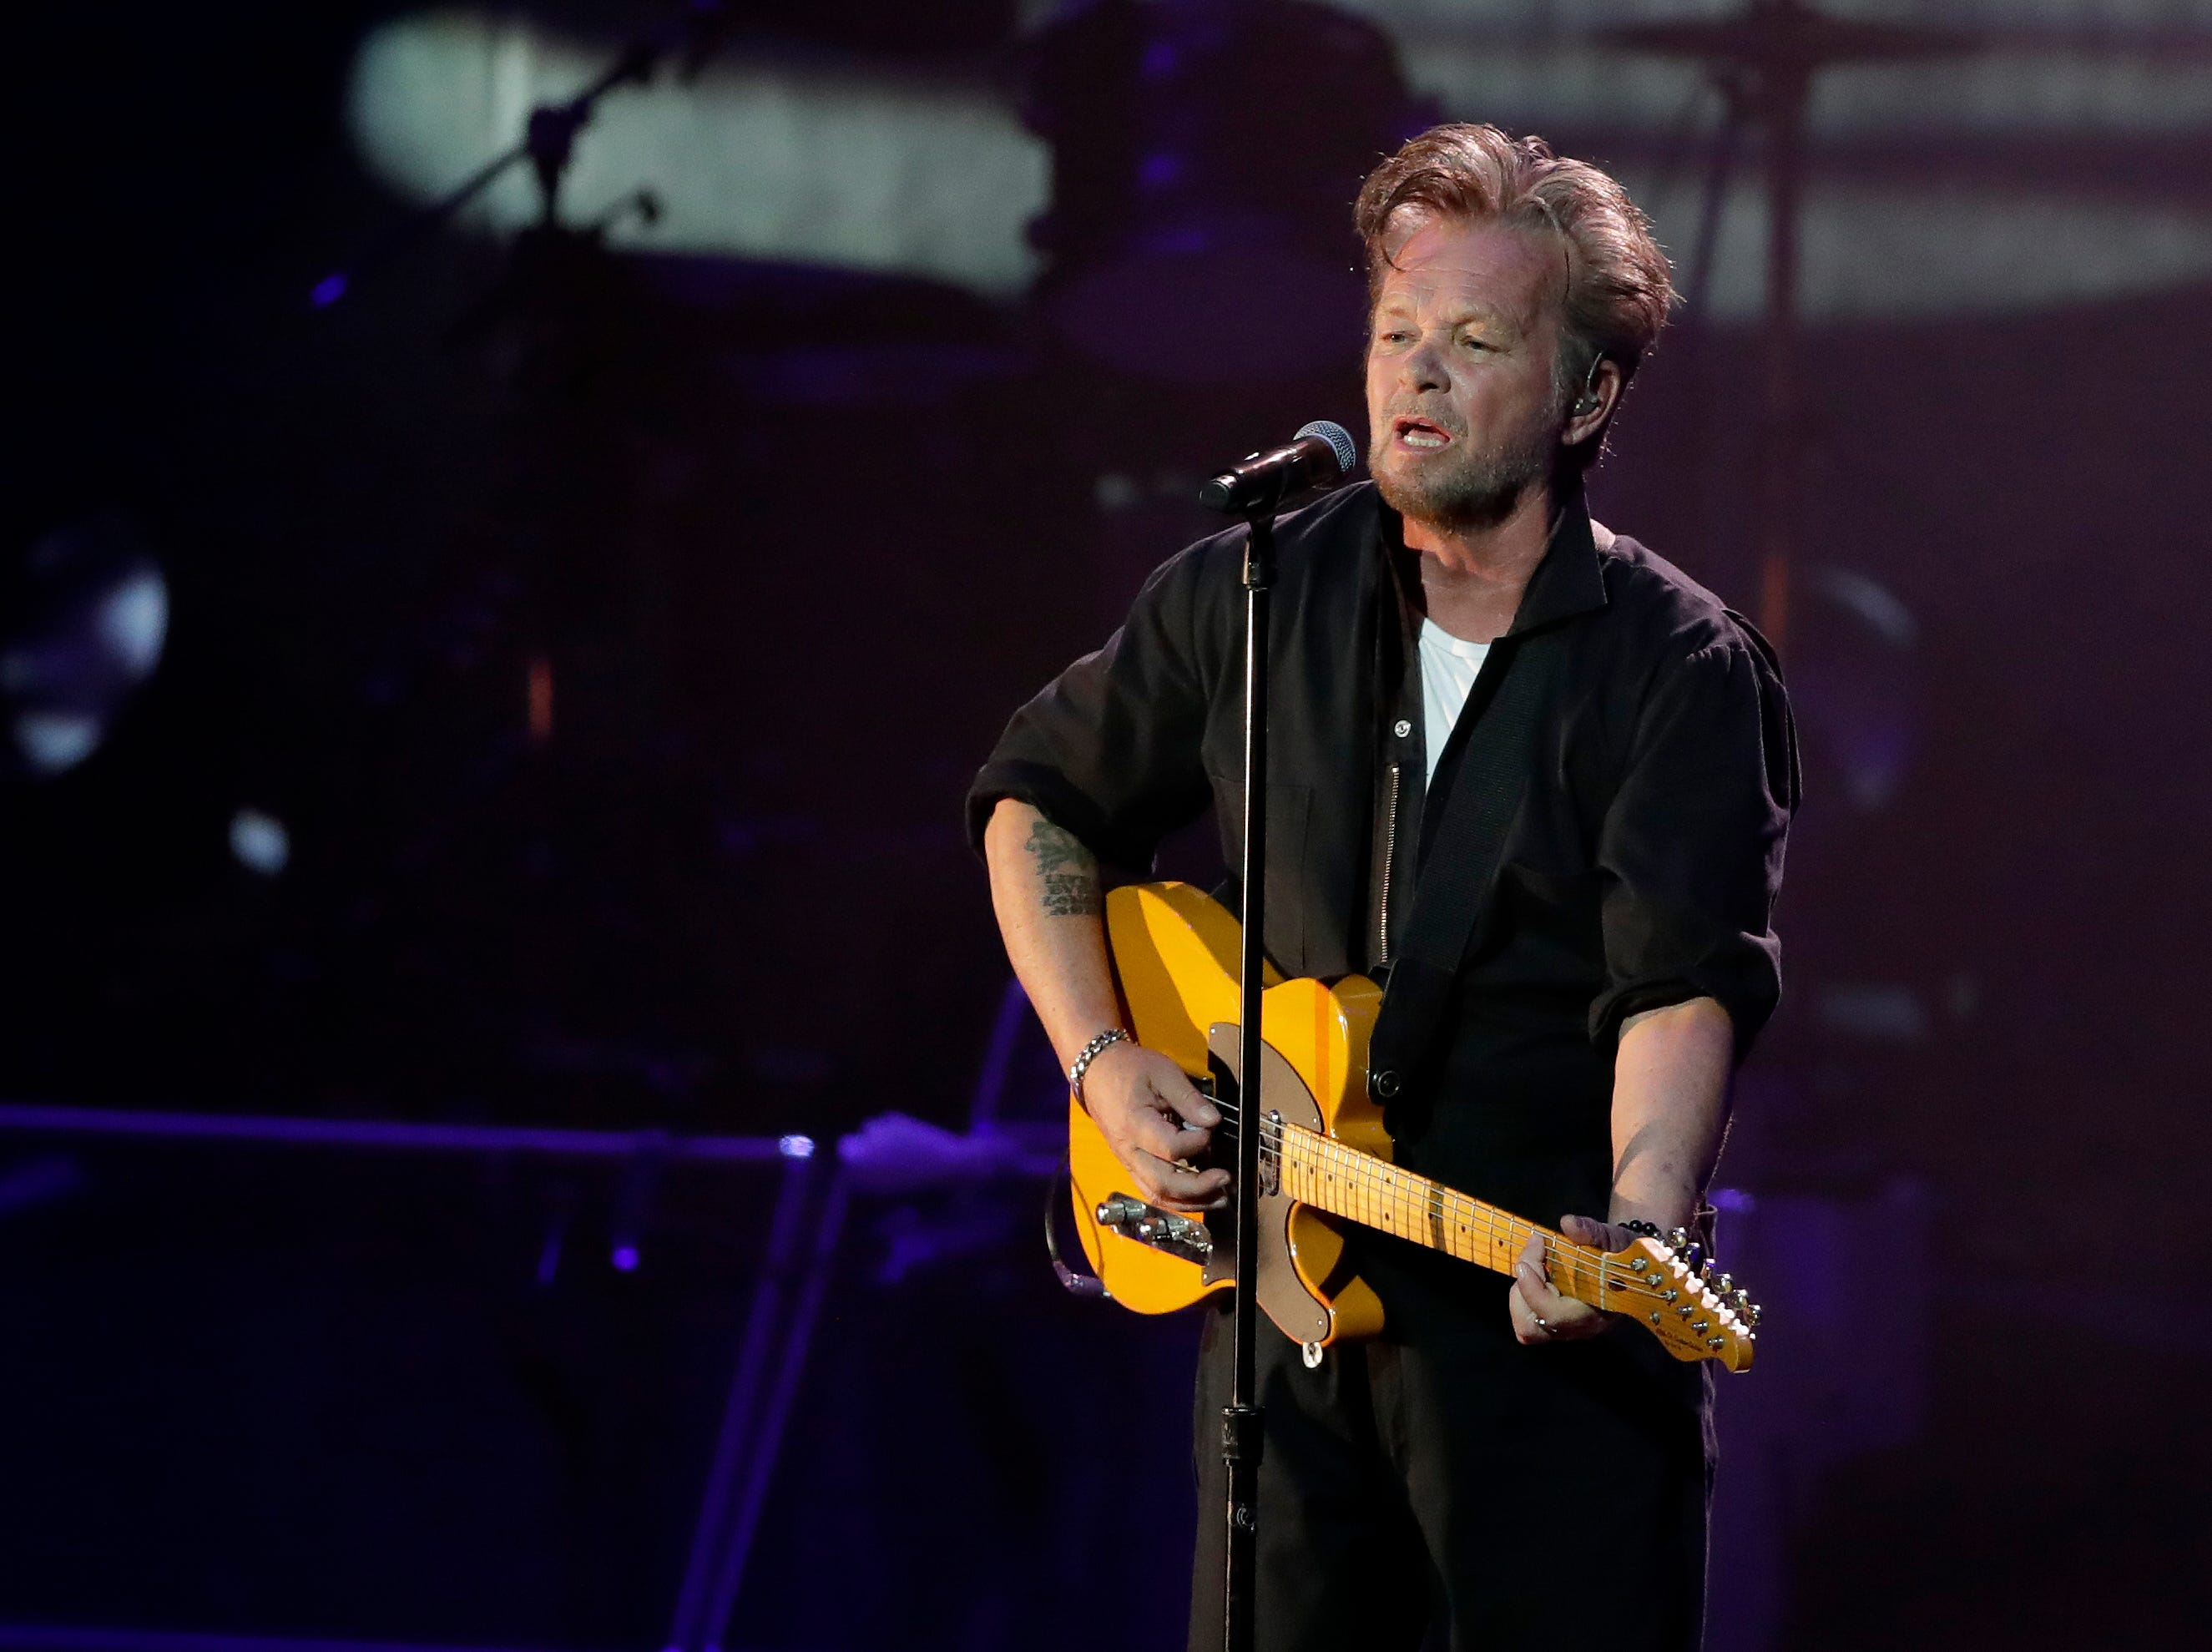 """John Mellencamp had a sellout crowd at the Weidner Center singing along to classic hits """"Jack & Diane,"""" """"Pink Houses"""" and """"Small Town"""" on Saturday night."""